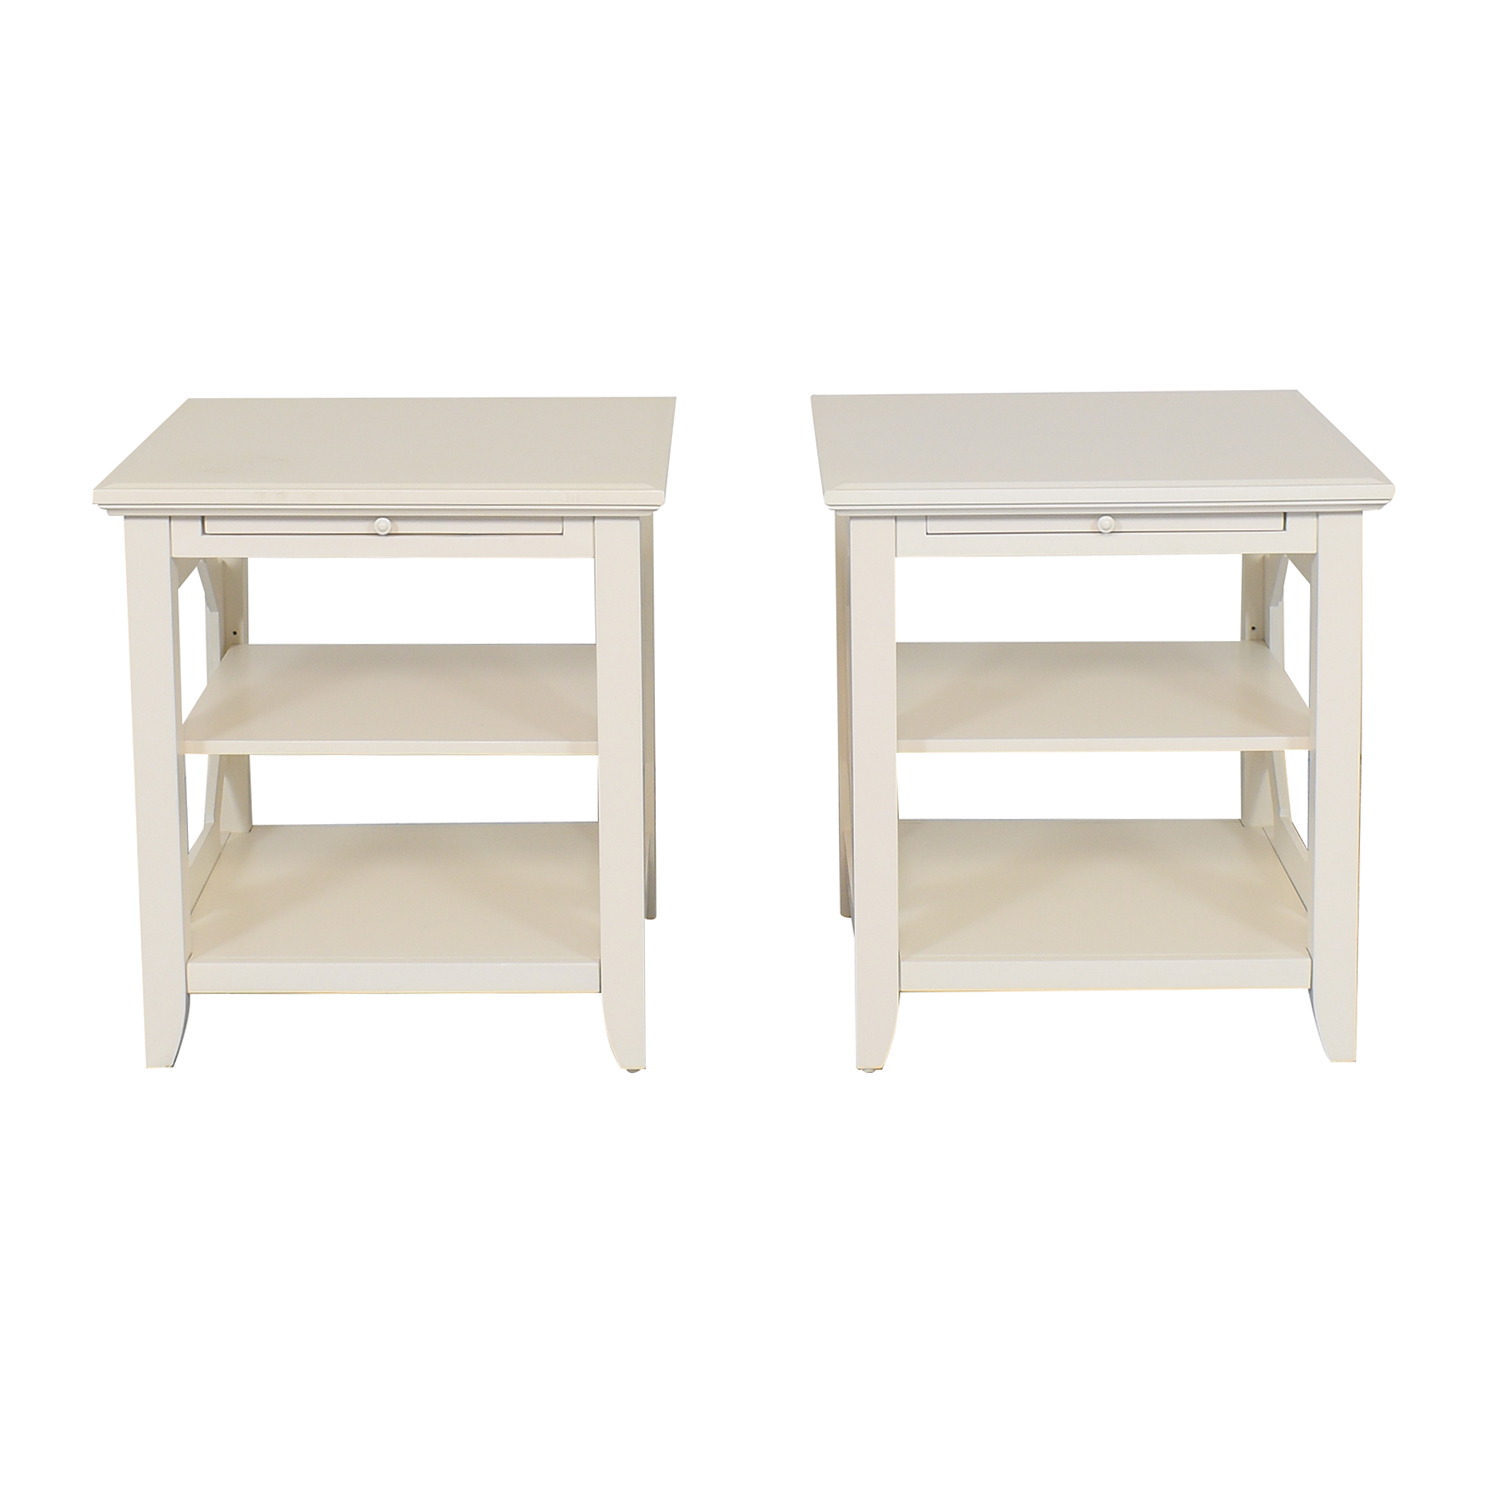 Raymour & Flanigan Raymour & Flanigan End Tables white